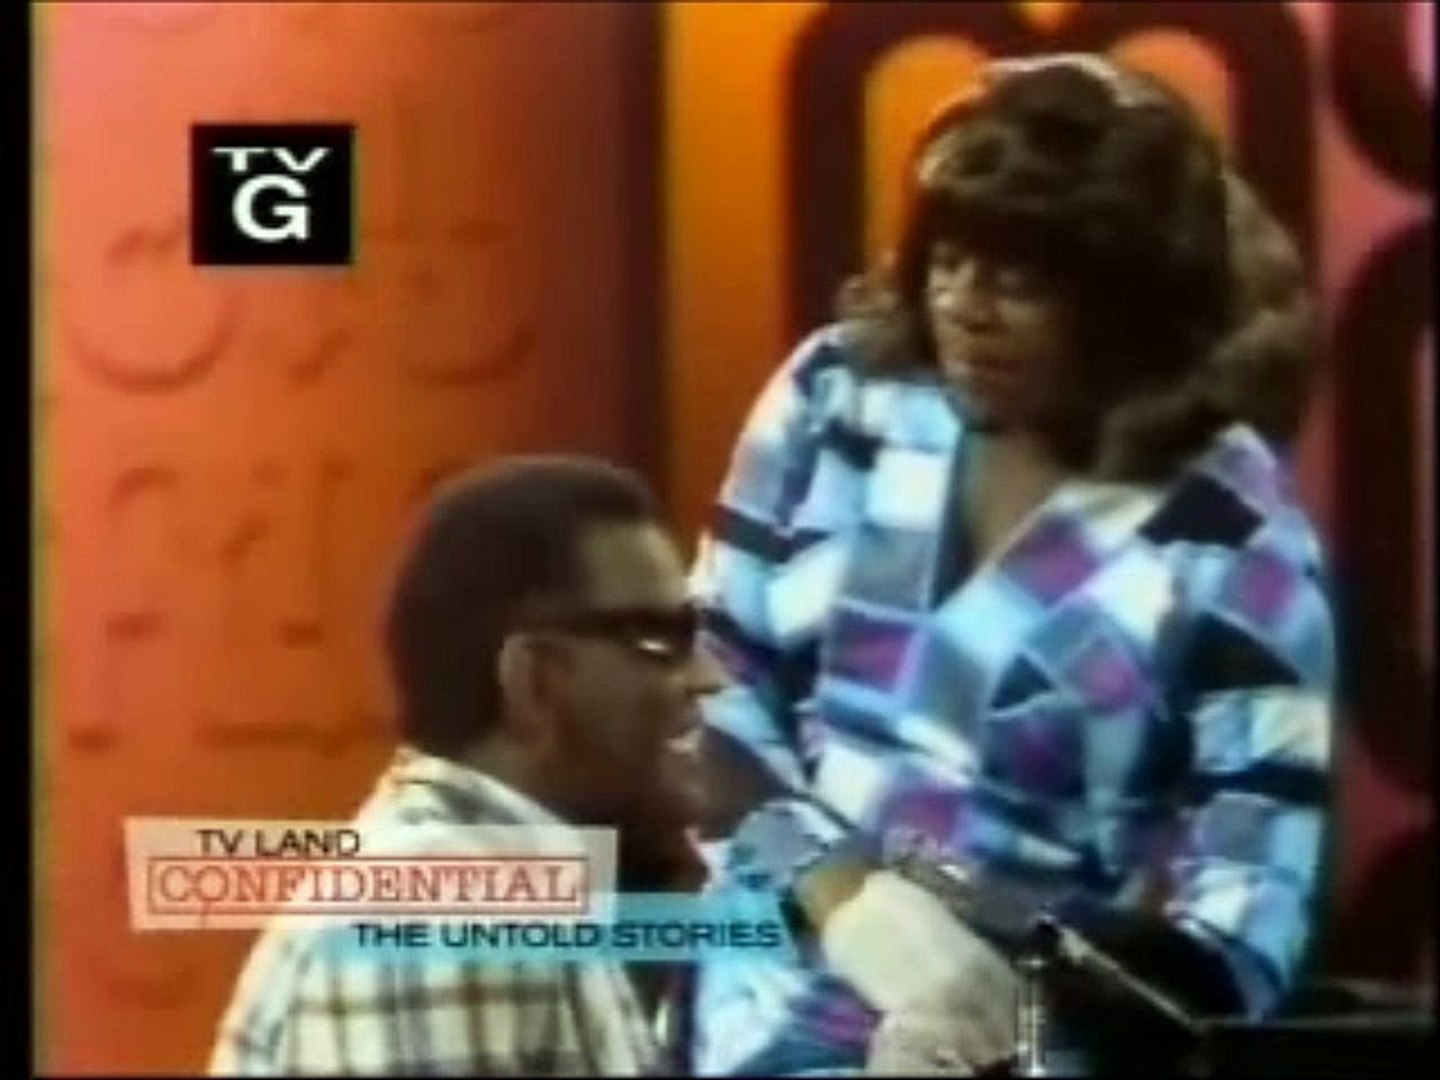 RAY CHARLES & FLIP WILSON (as Geraldine) - 1971 - Comedy Routine